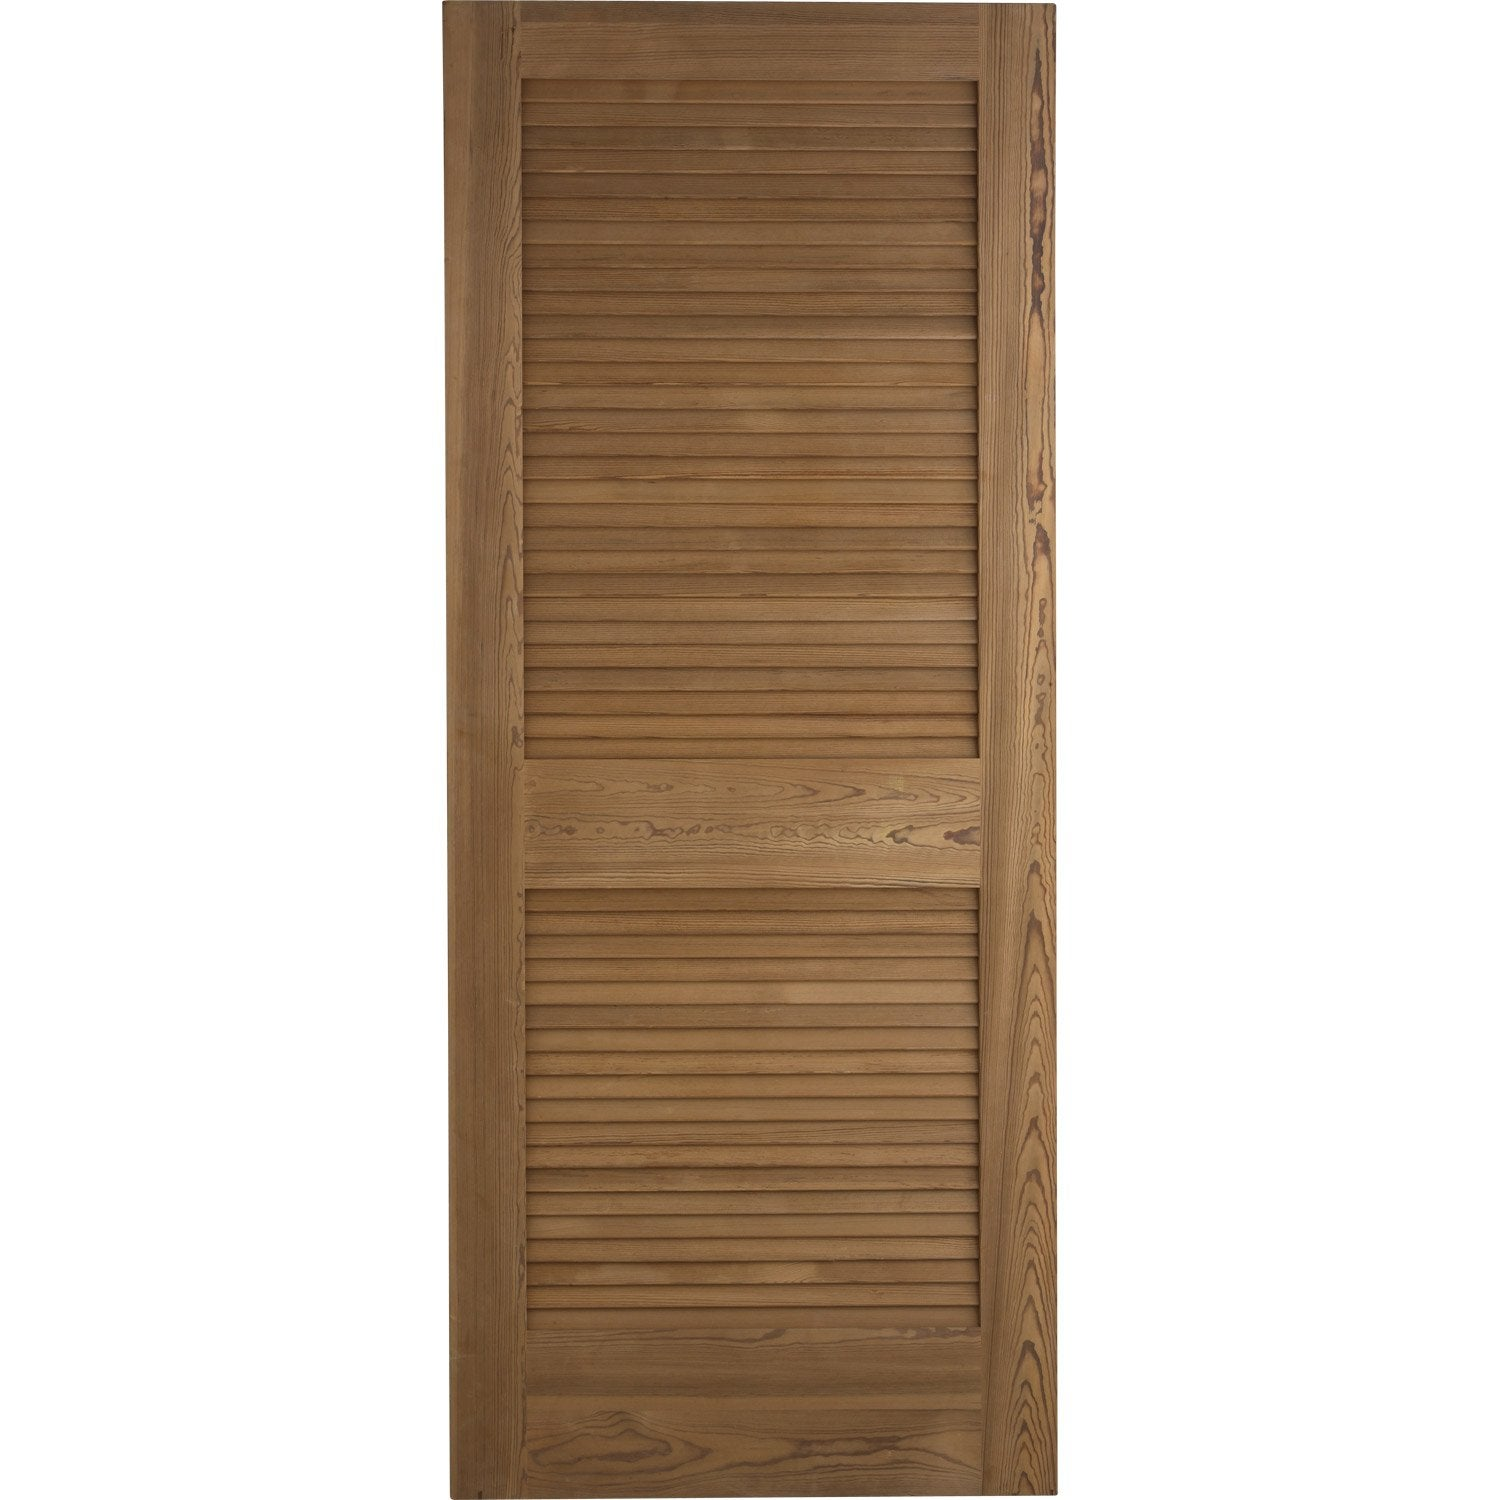 Porte coulissante pin plaqu marron java artens 204 x 73 cm leroy merlin - Plaque de bois leroy merlin ...